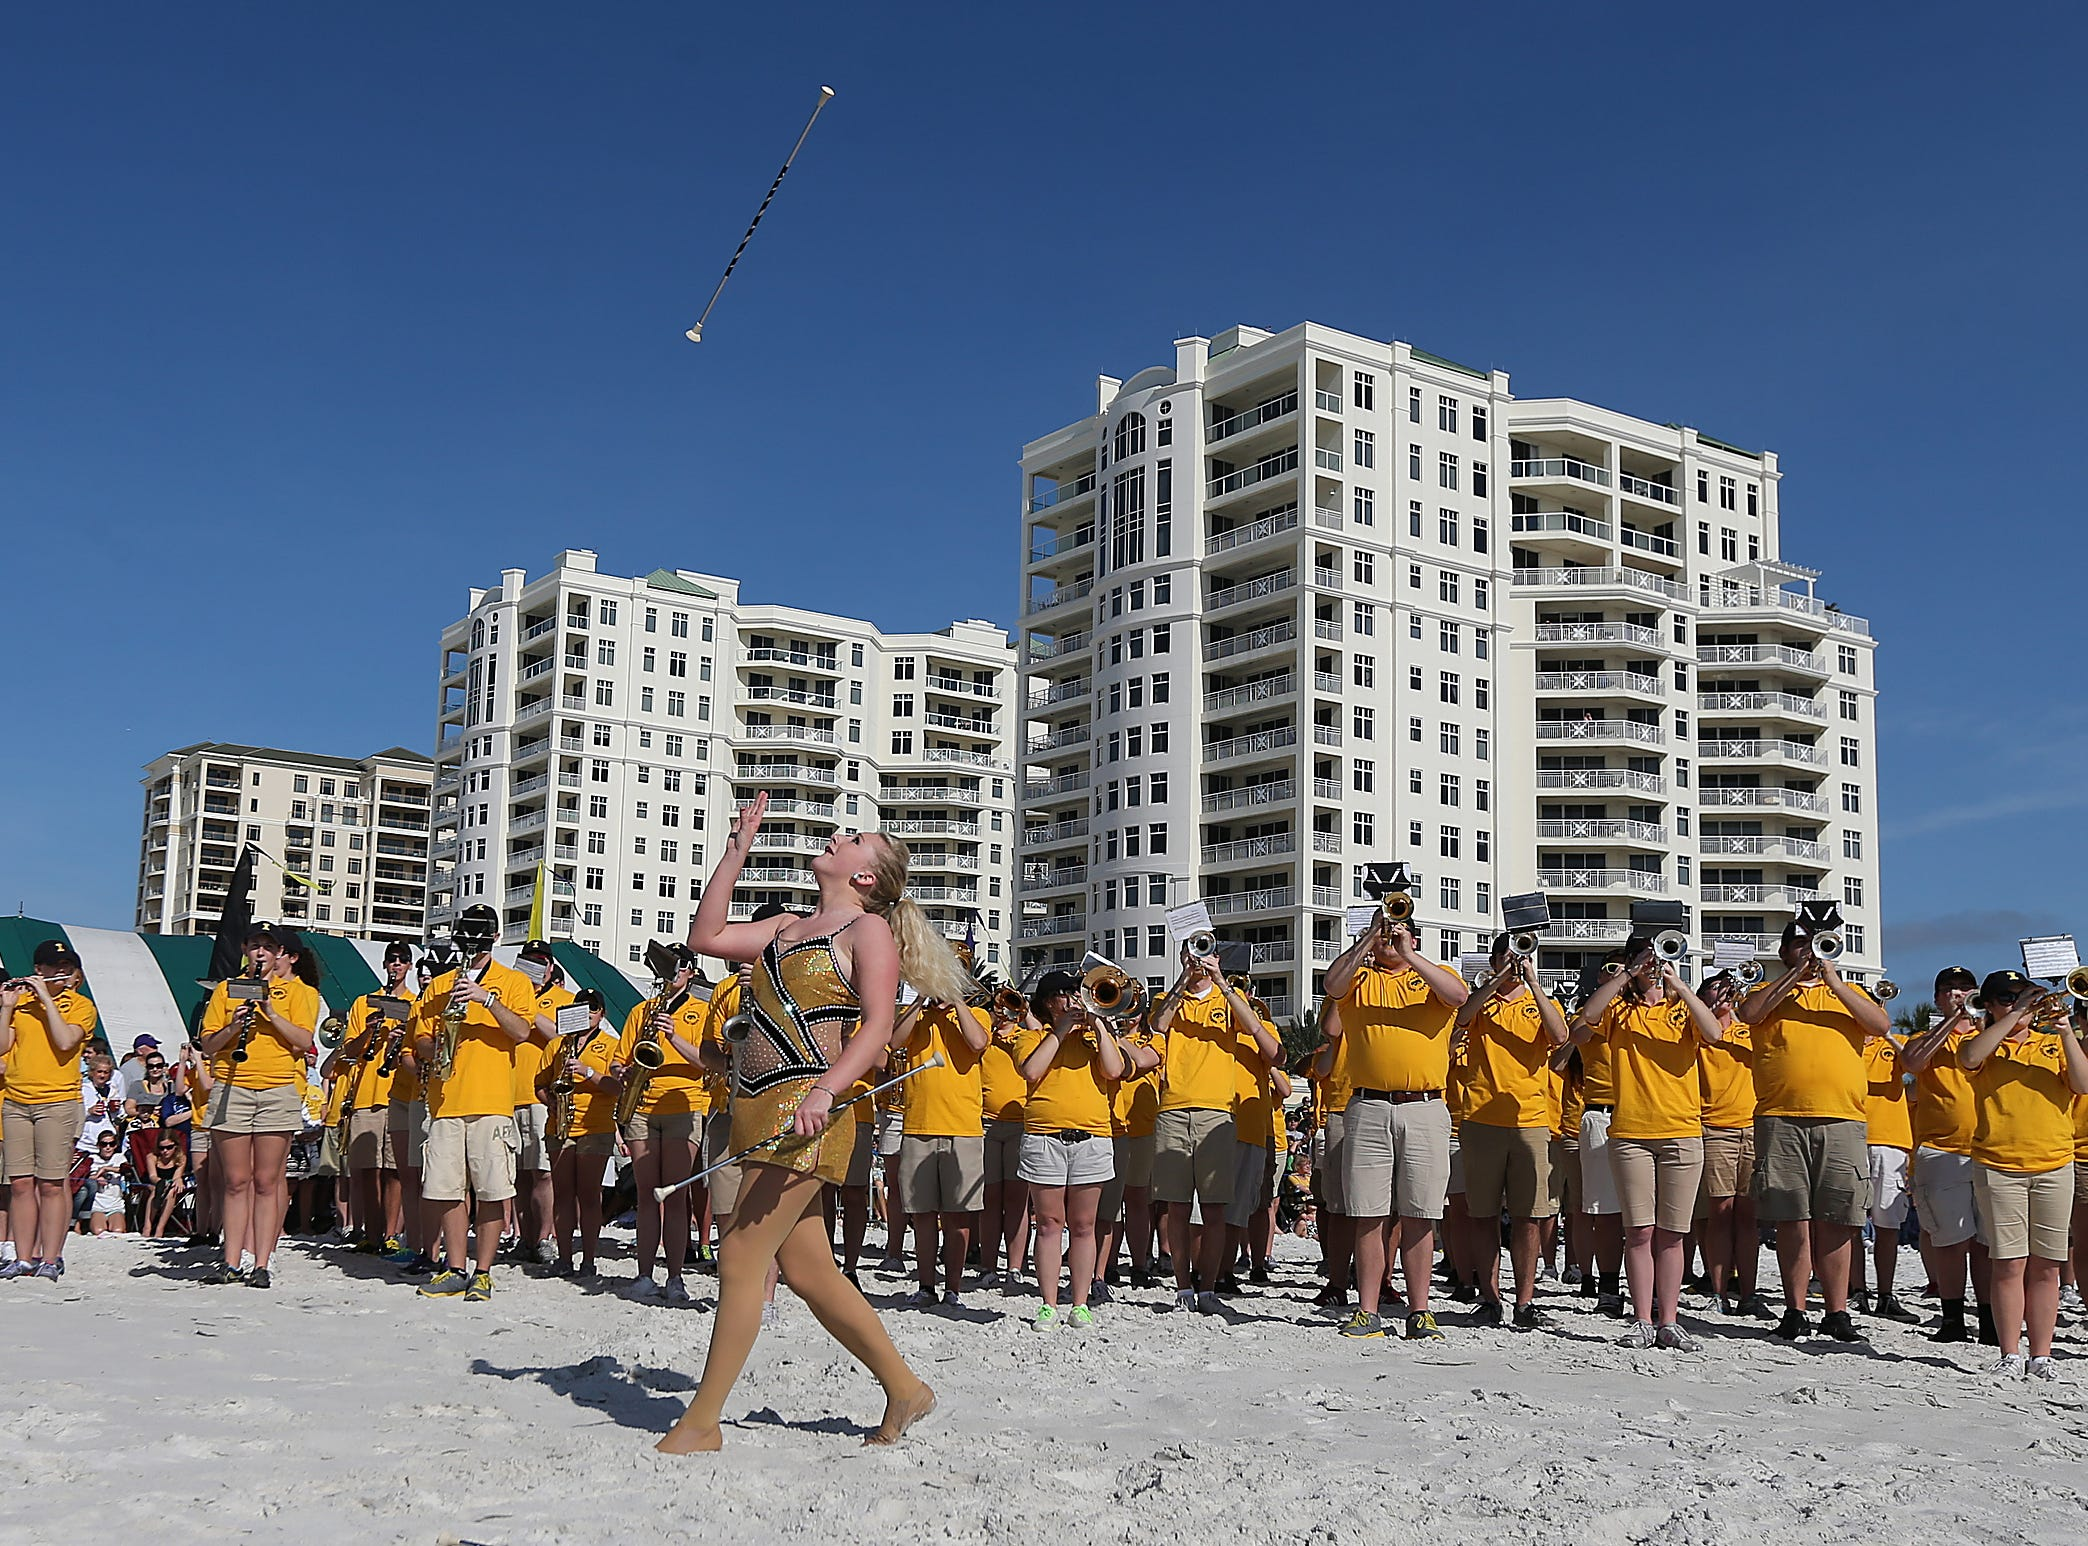 Members of the University of Iowa marching band perform during beach day on Monday, Dec. 30, 2013, in Clearwater, Florida. (Bryon Houlgrave/The Register)